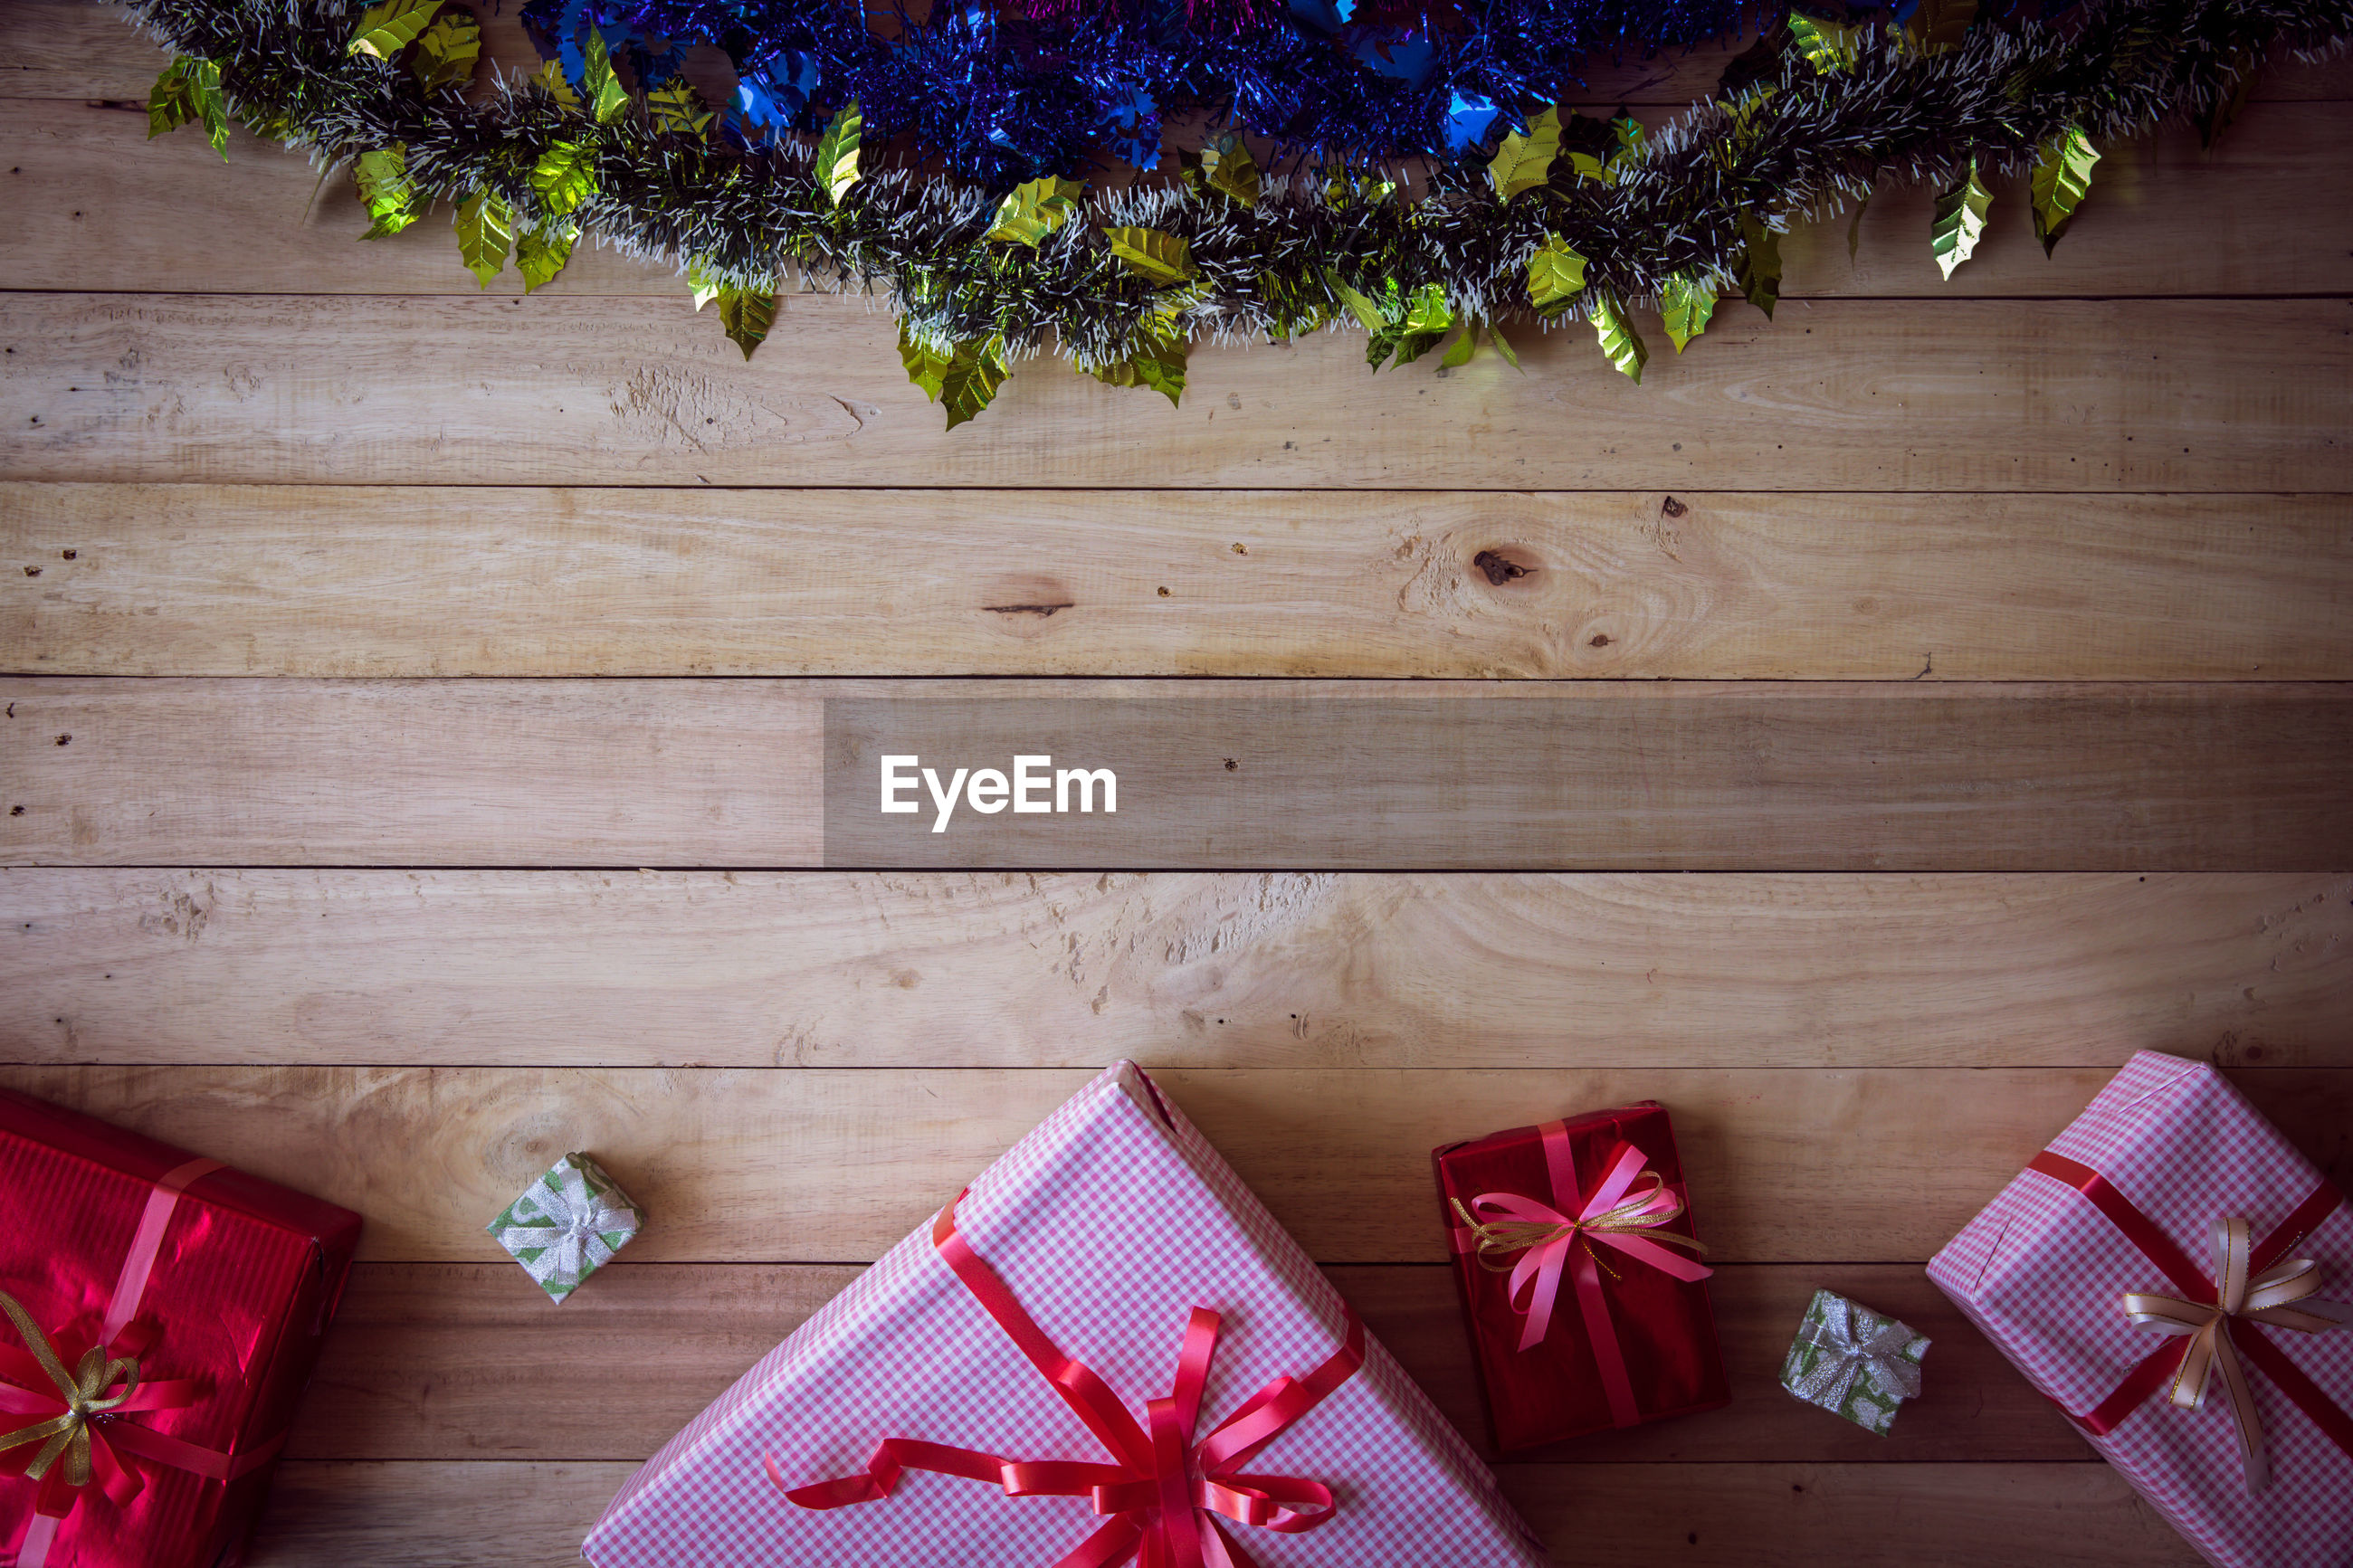 HIGH ANGLE VIEW OF CHRISTMAS DECORATIONS ON TABLE AGAINST TREE